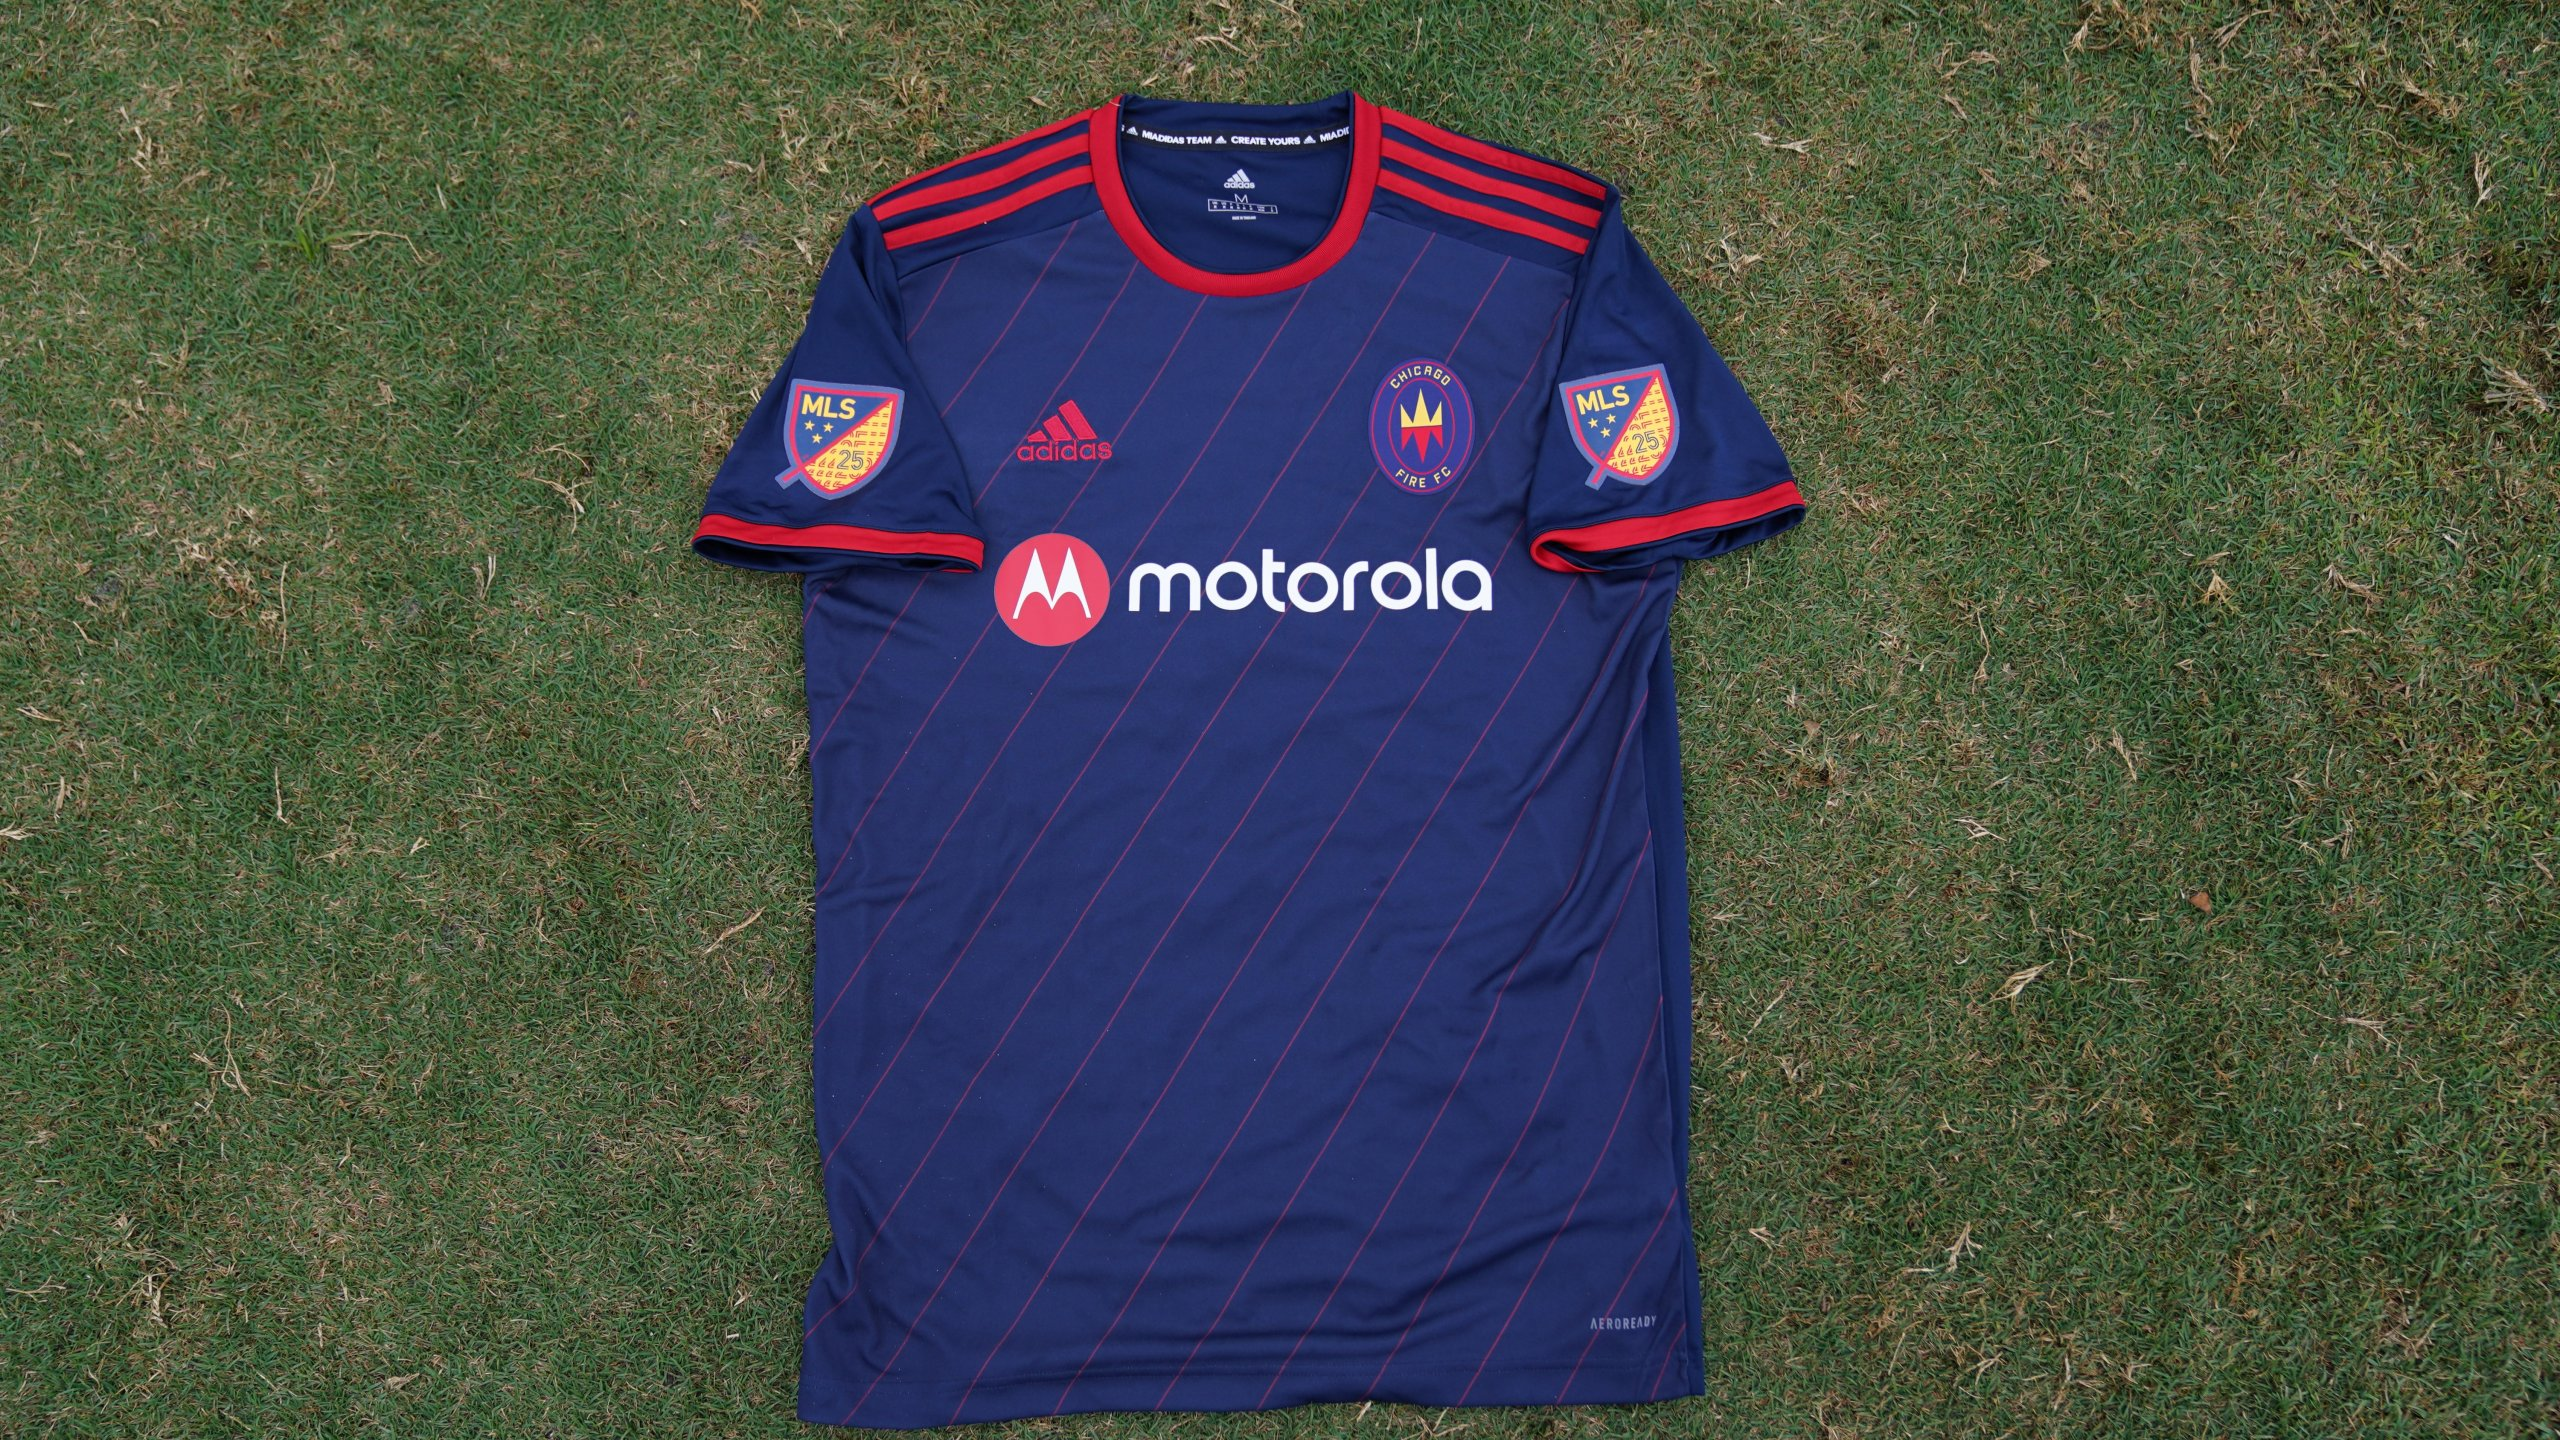 Chicago Fire Fc Reveals Their 2020 Home Jersey Wgn Tv